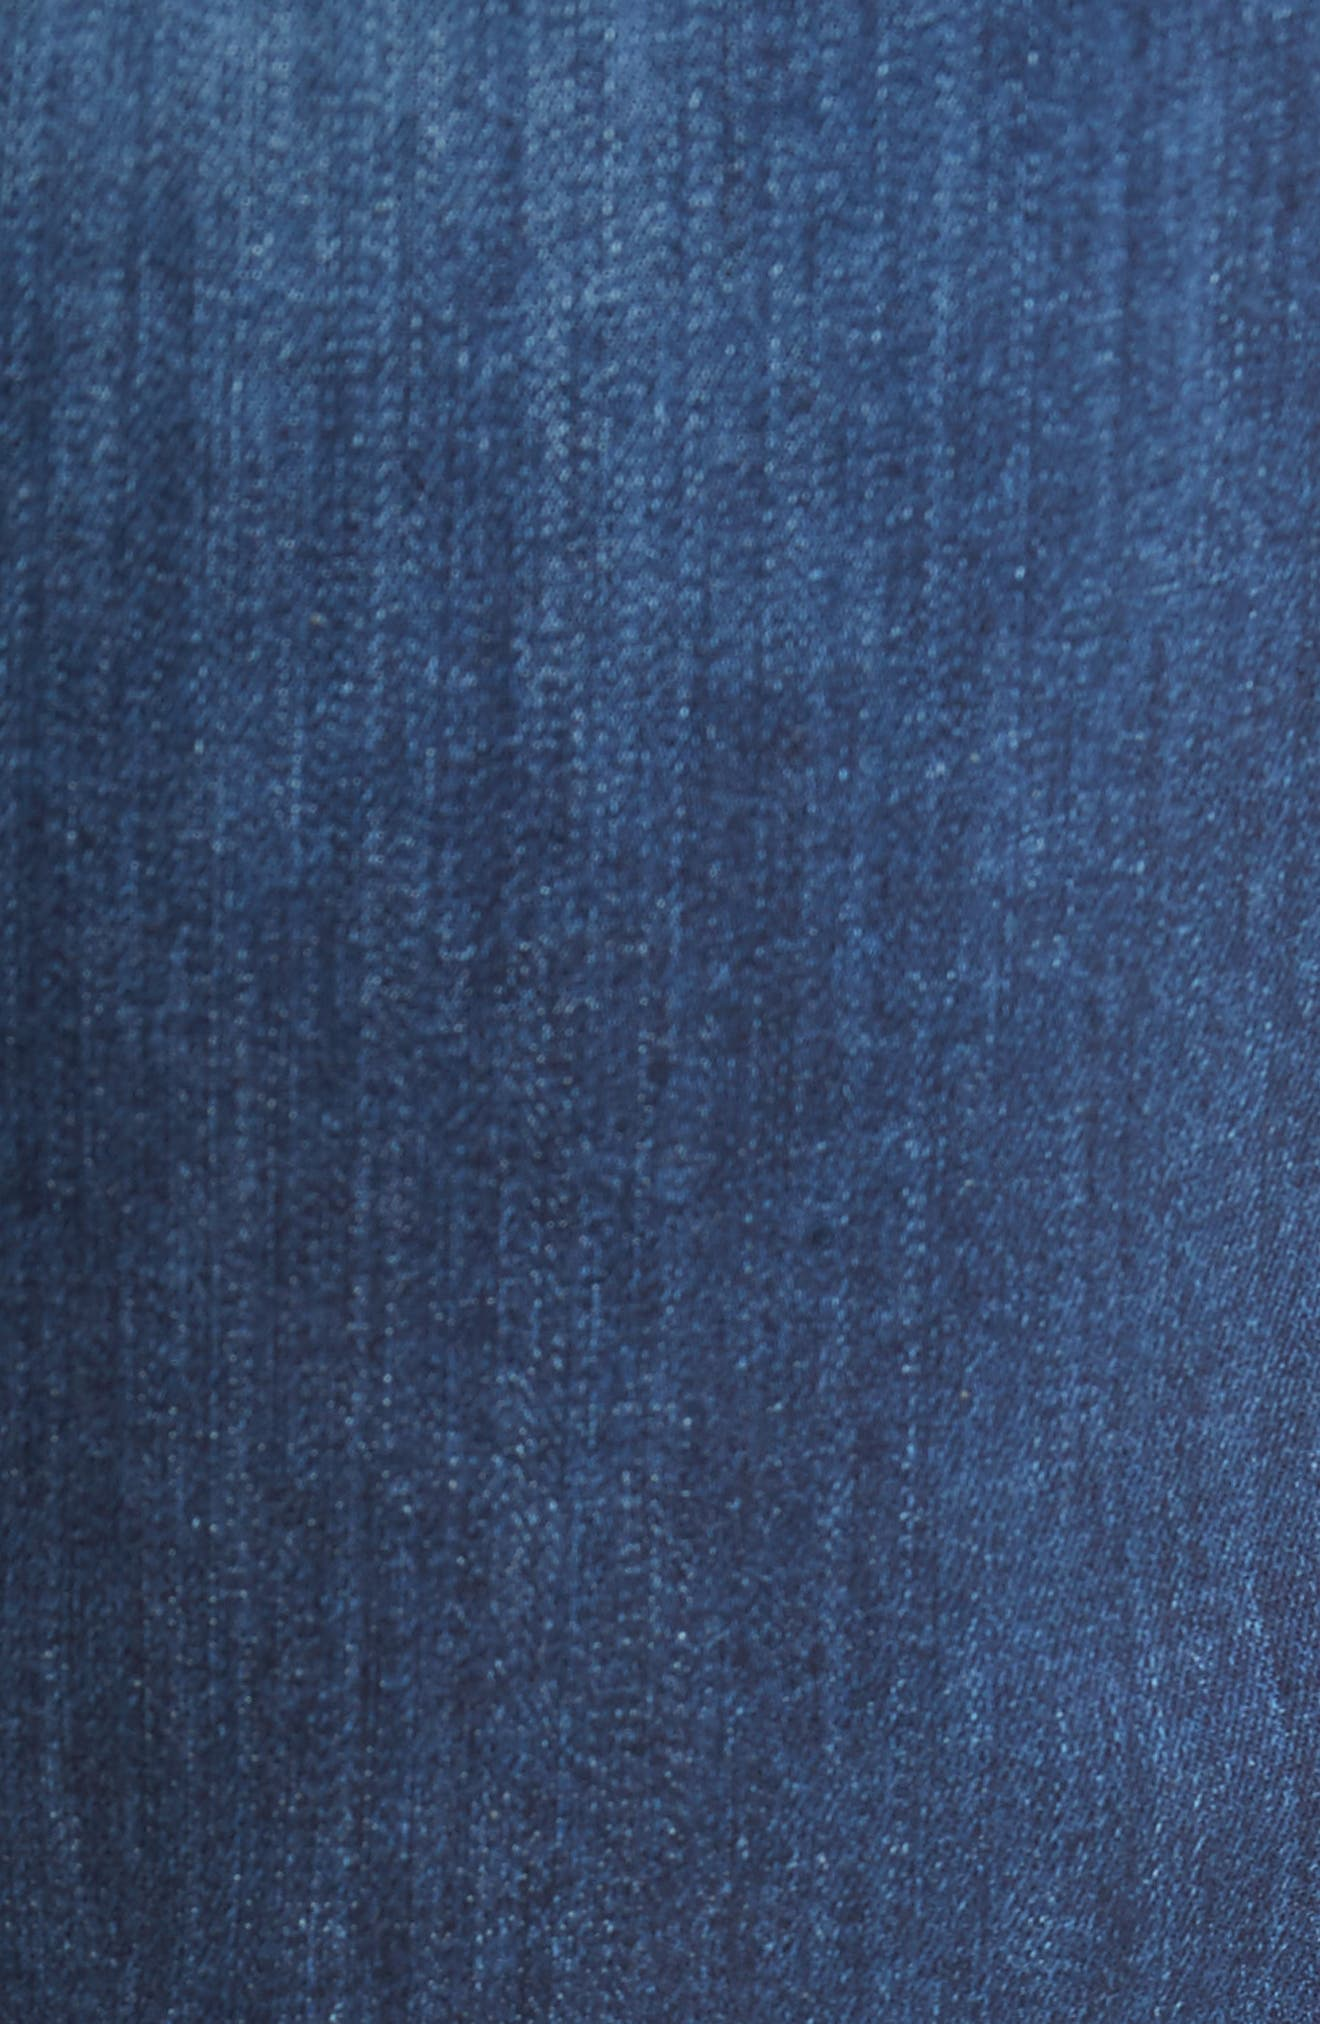 5011 Relaxed Fit Jeans,                             Alternate thumbnail 5, color,                             LIVERPOOL